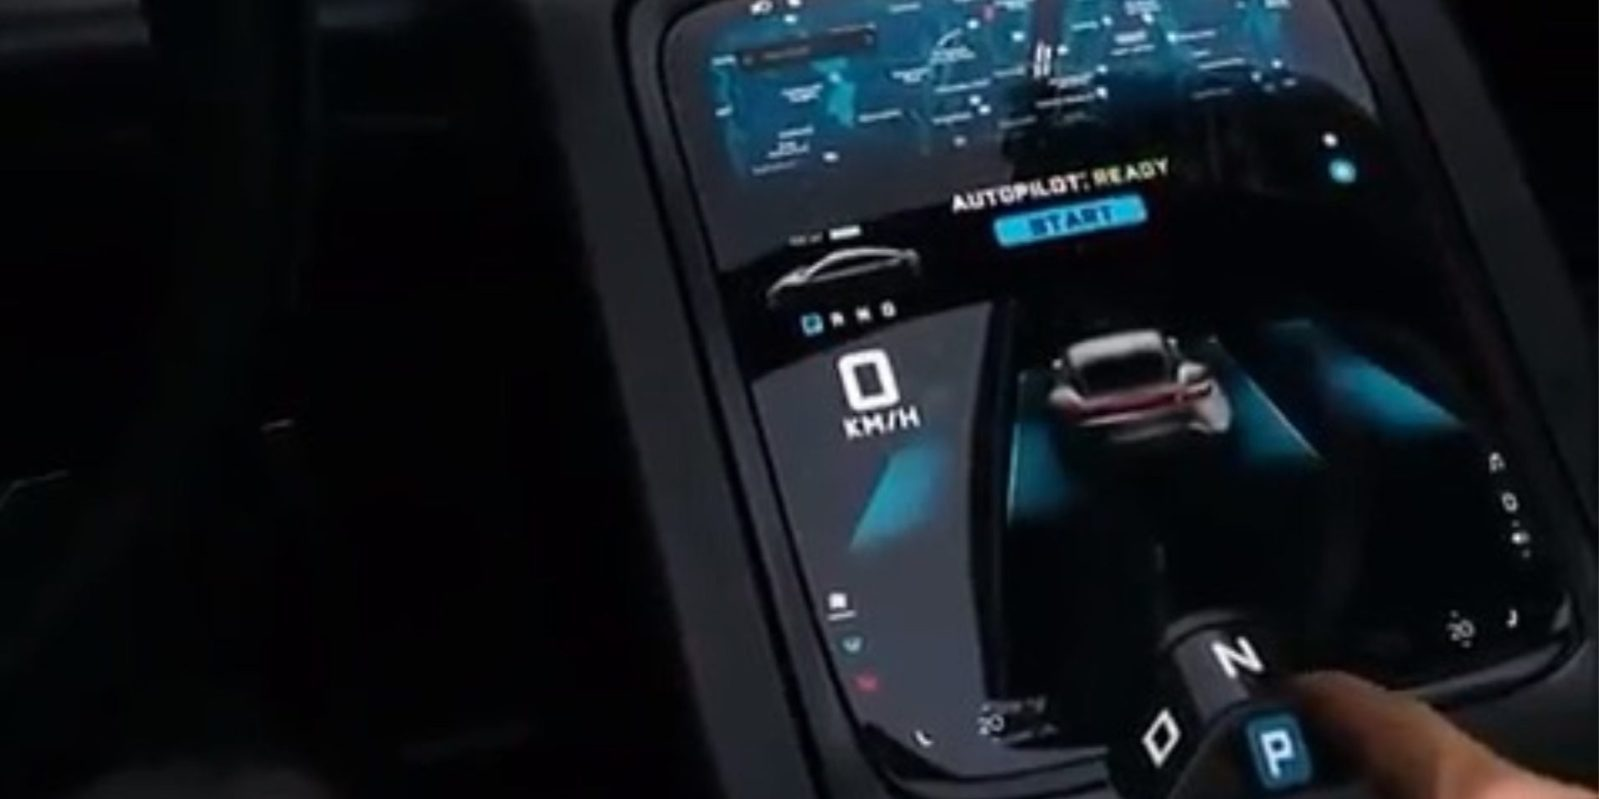 Porsche Taycan interior and user interface leaks with 'Autopilot' feature